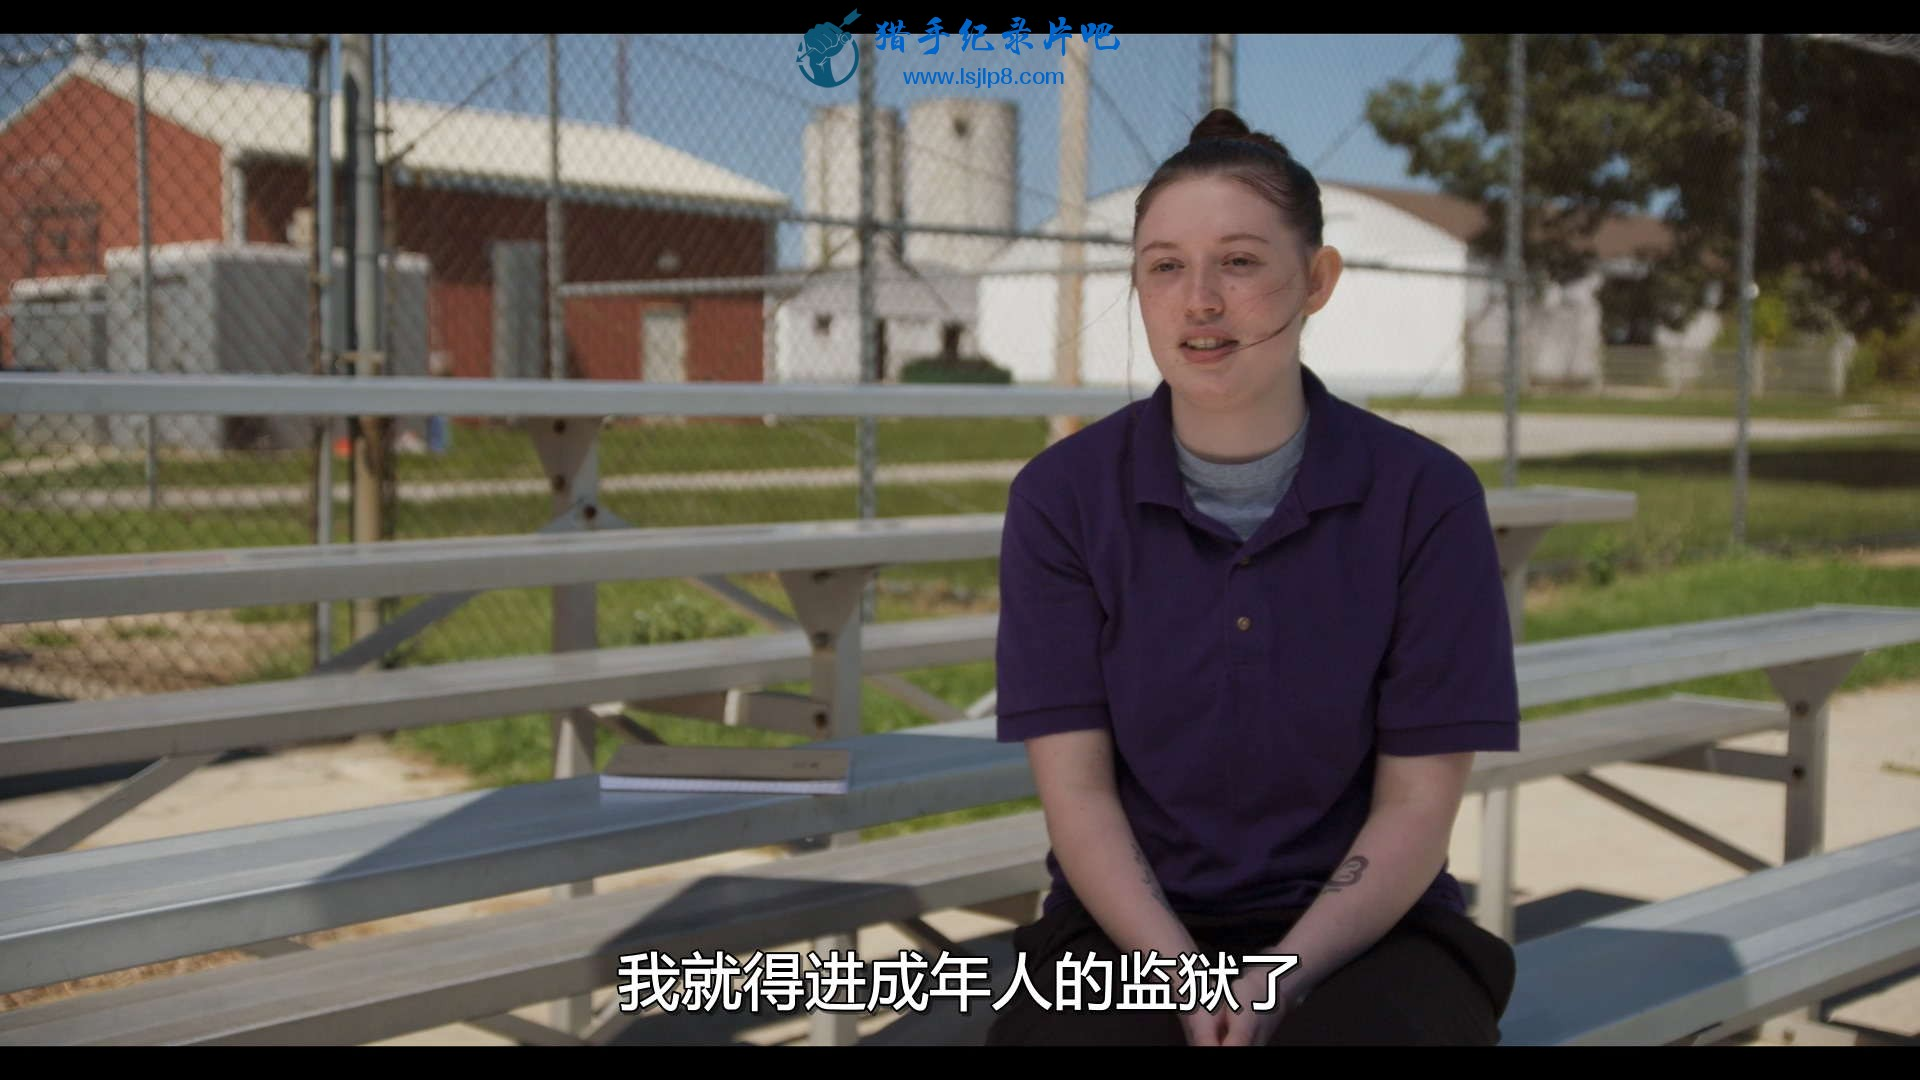 Girls.Incarcerated.S02E01.1080p.NF.WEB-DL.DDP5.1.x264-Ao.mkv_20200604_132950.113.jpg